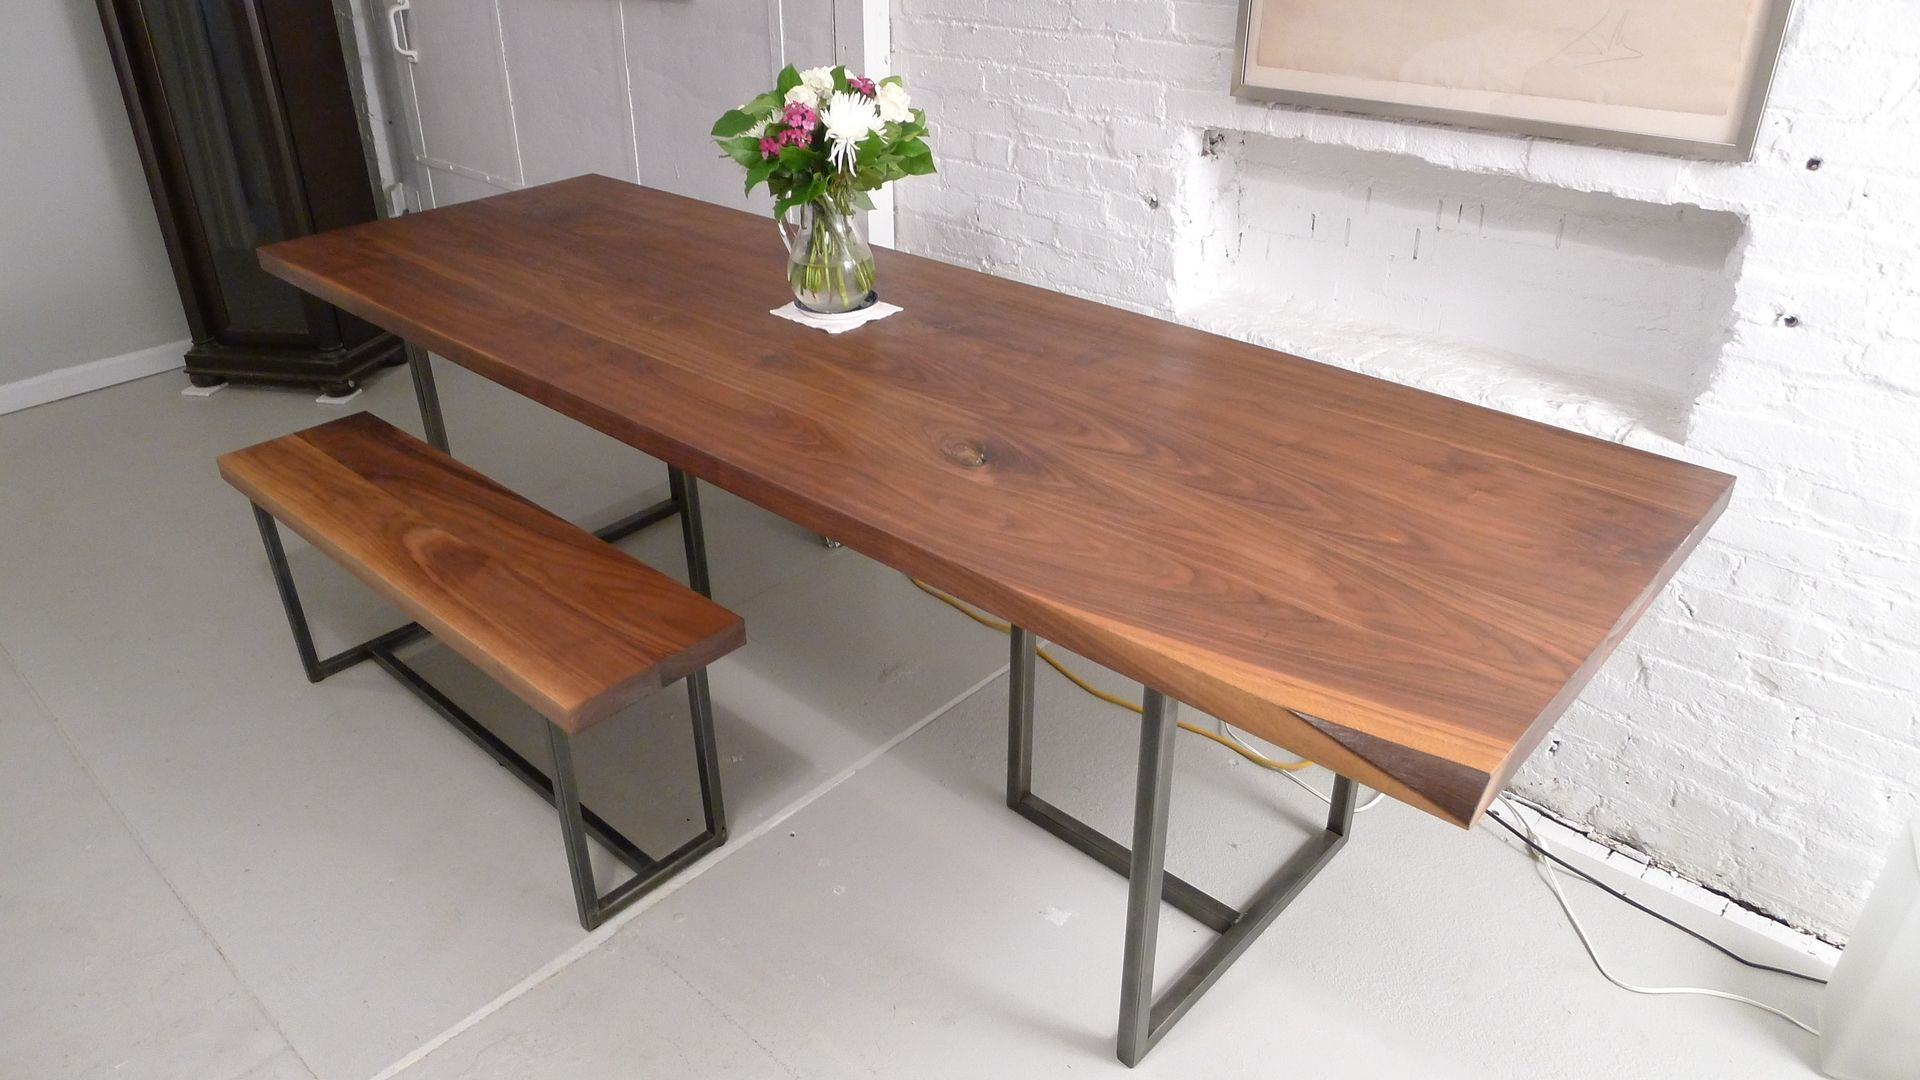 Handmade Walnut Dining Table By Harvest Home Steel